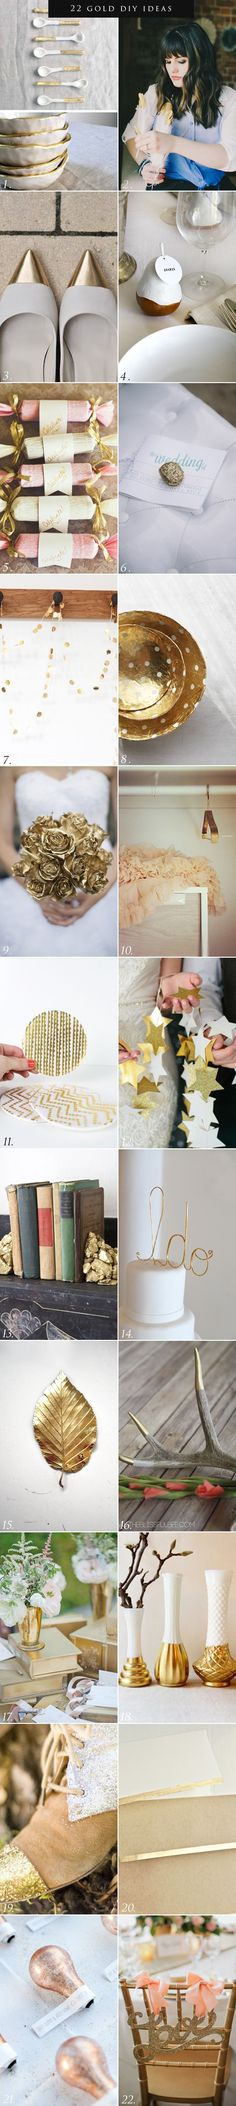 22 Gold Inspired DIY Wedding Ideas - I'm not planning on getting married in this lifetime, but these all are goddamn adorable and I will be gifting them out to buddies!